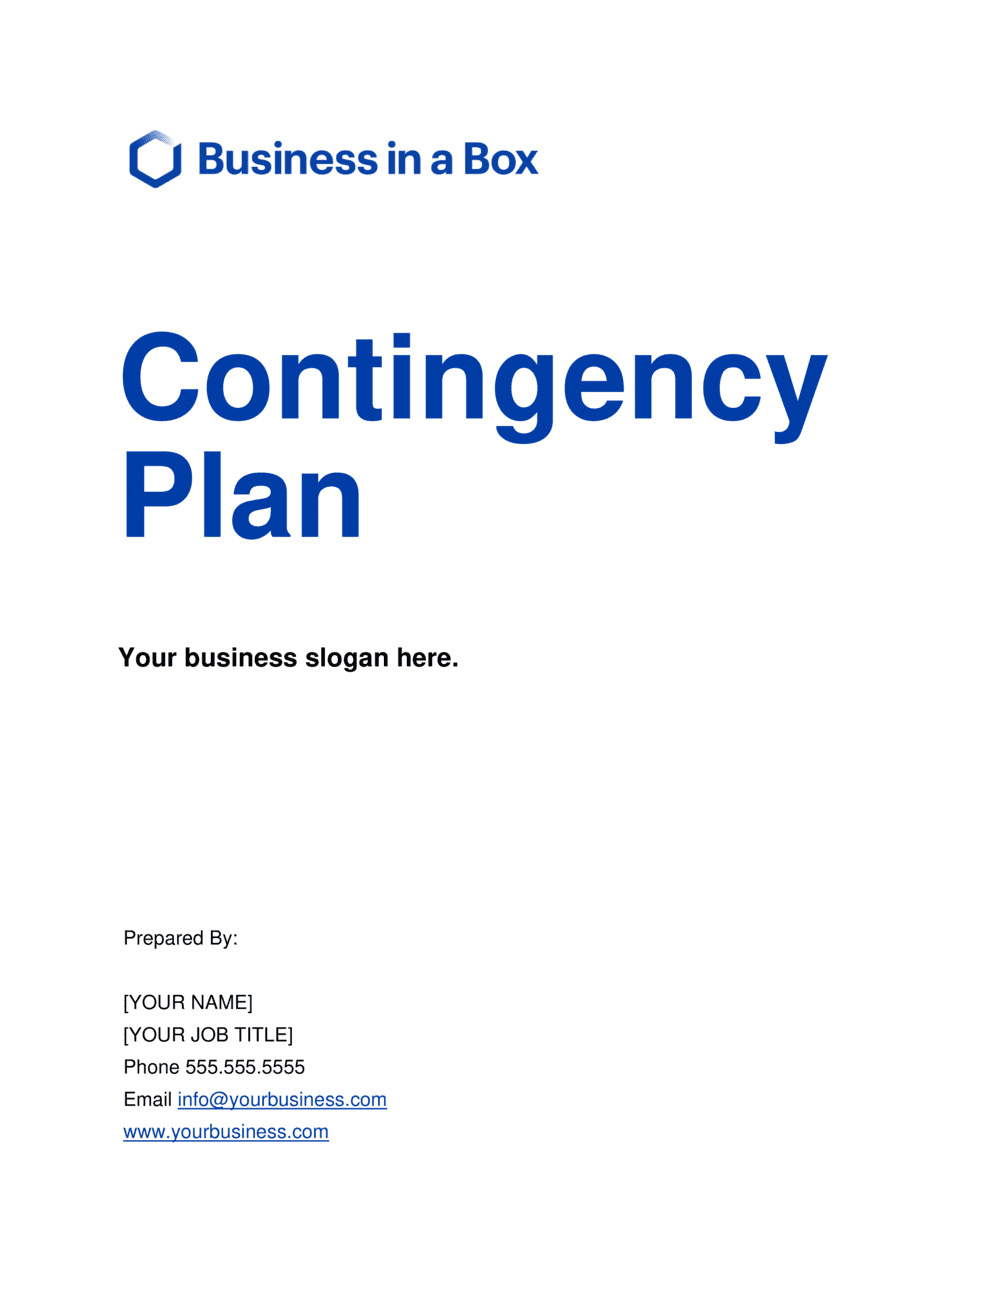 Business-in-a-Box's Business Contingency Plan Template